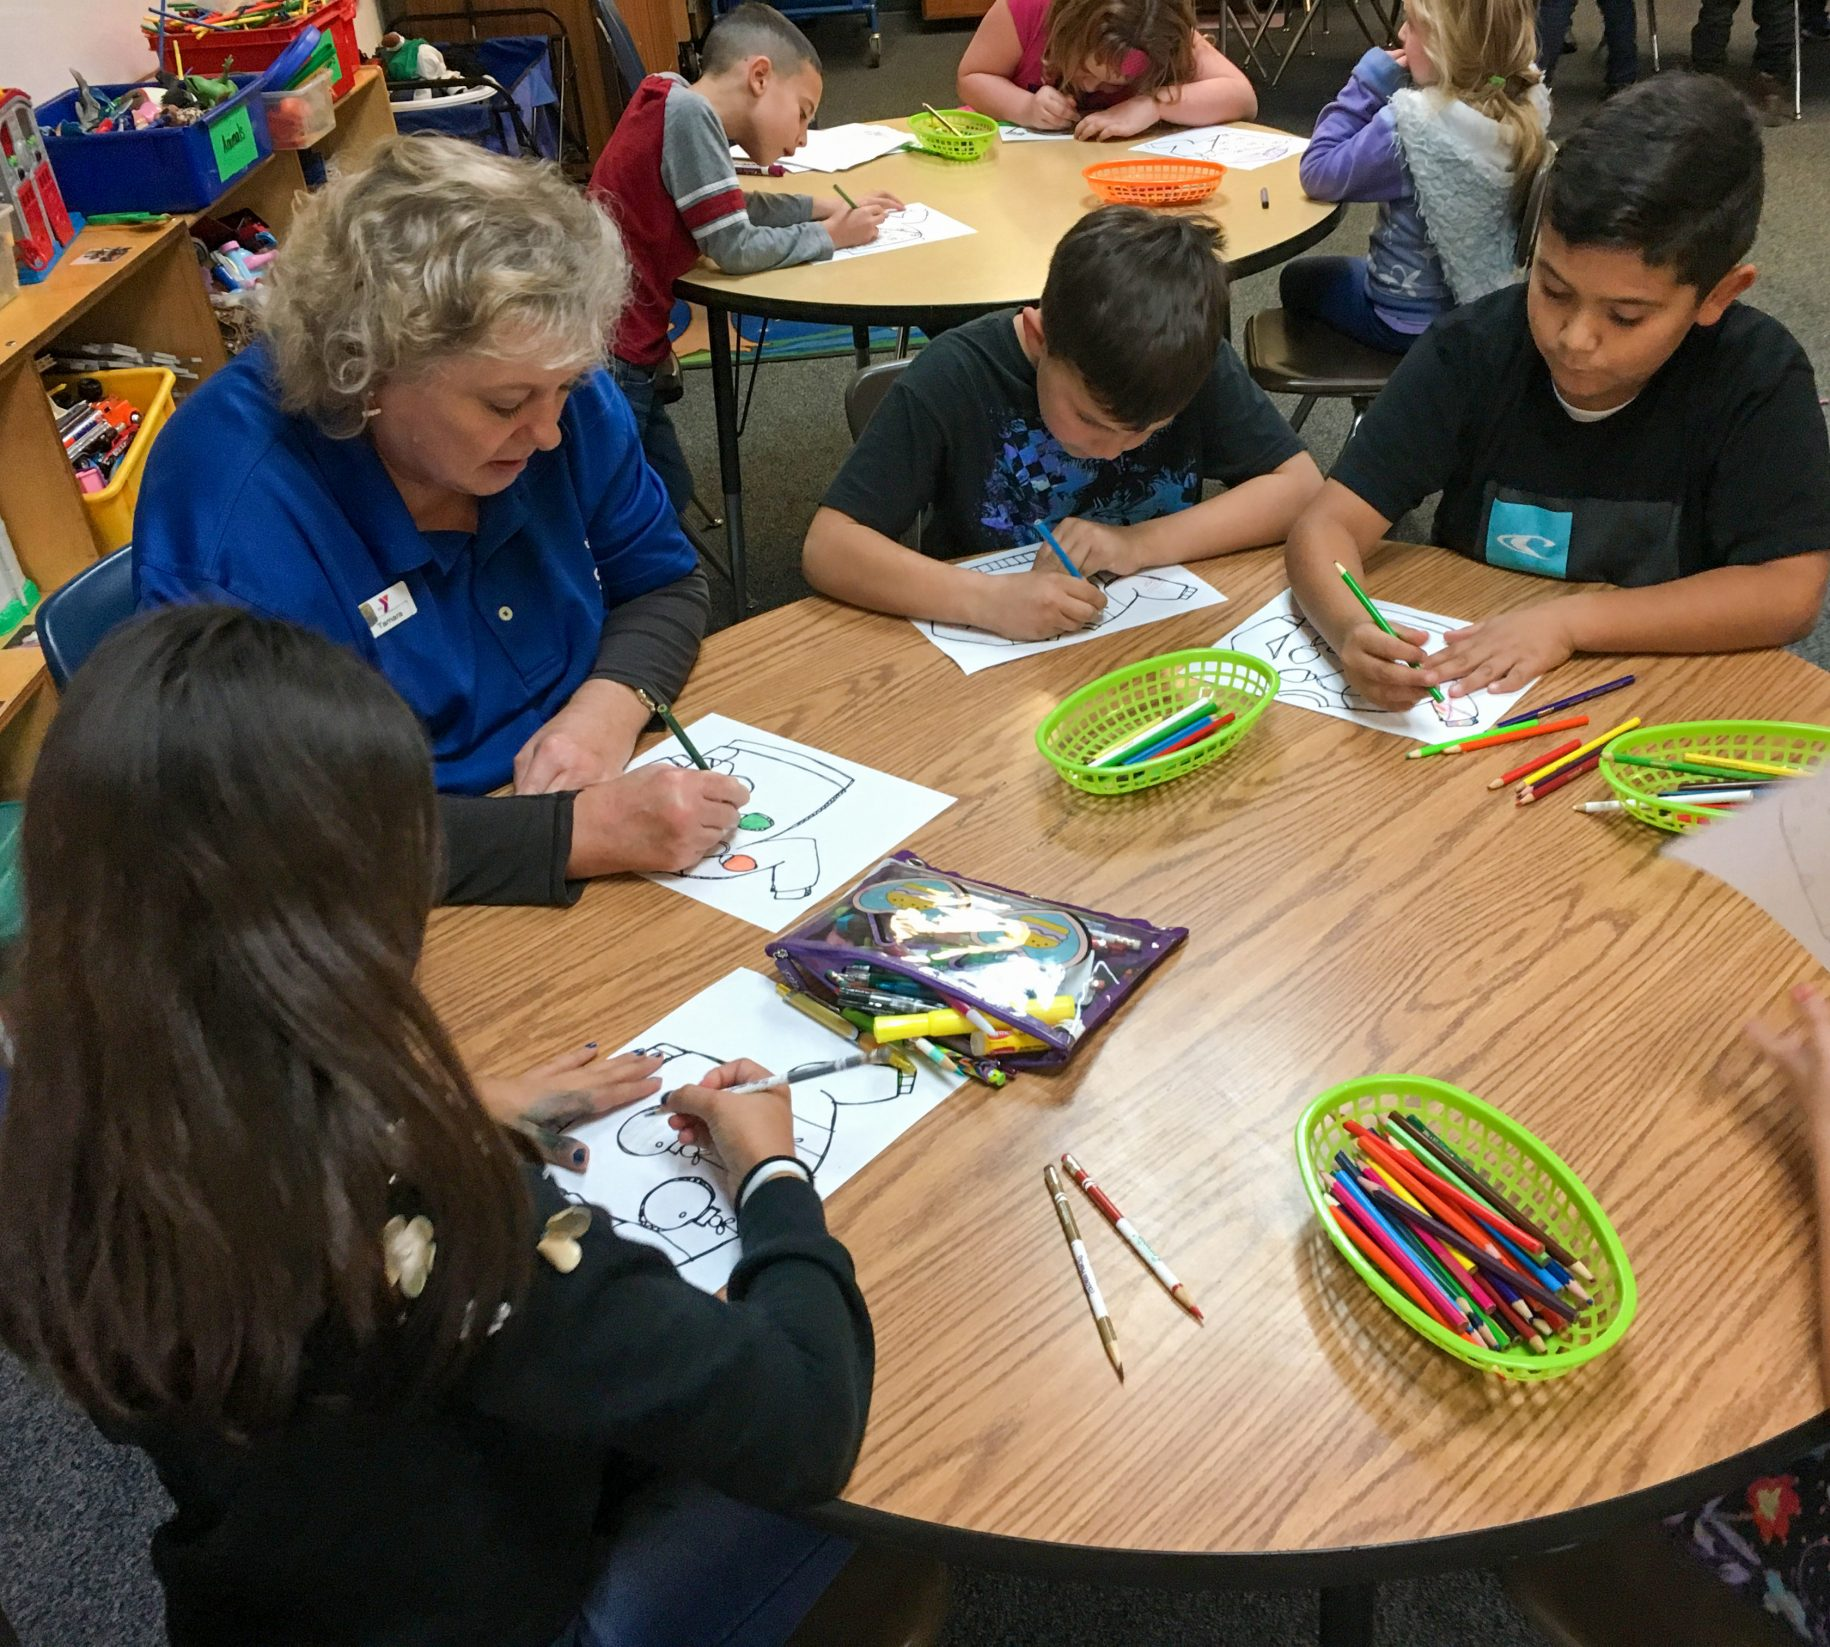 three children coloring pictures with an adult female Y staff member